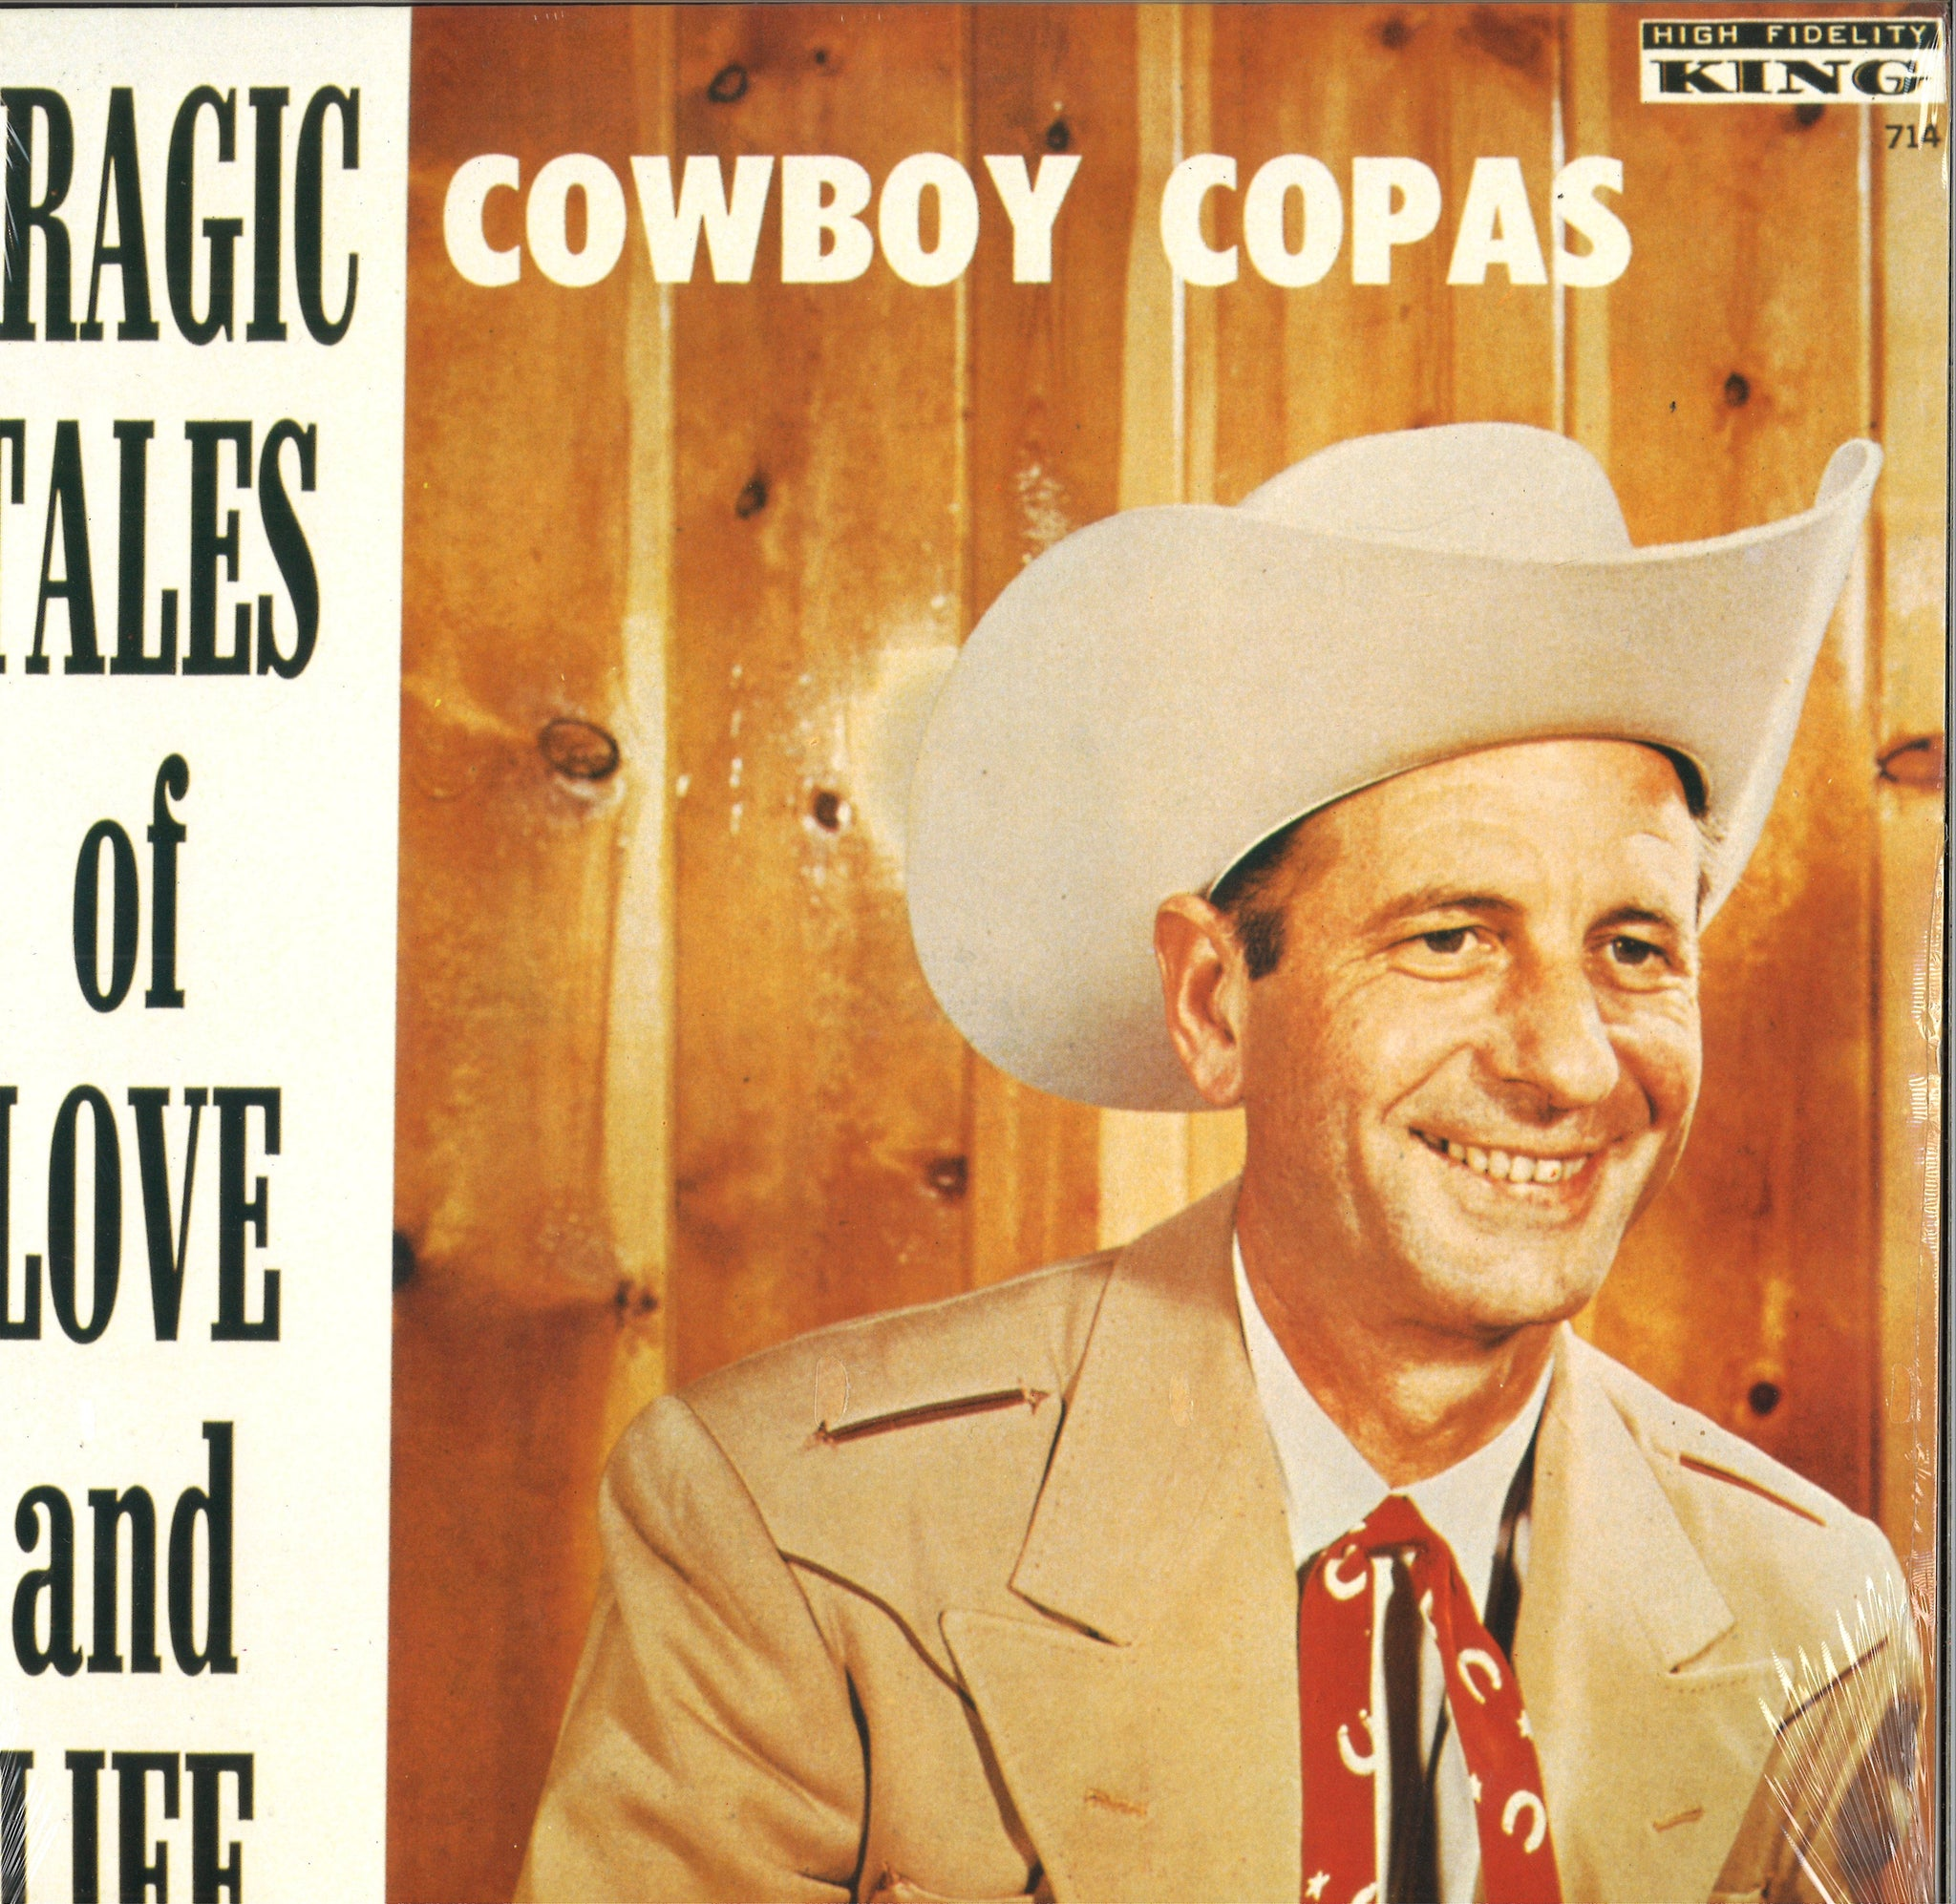 Cowboy Copas Tragic Tales Of Love & Life